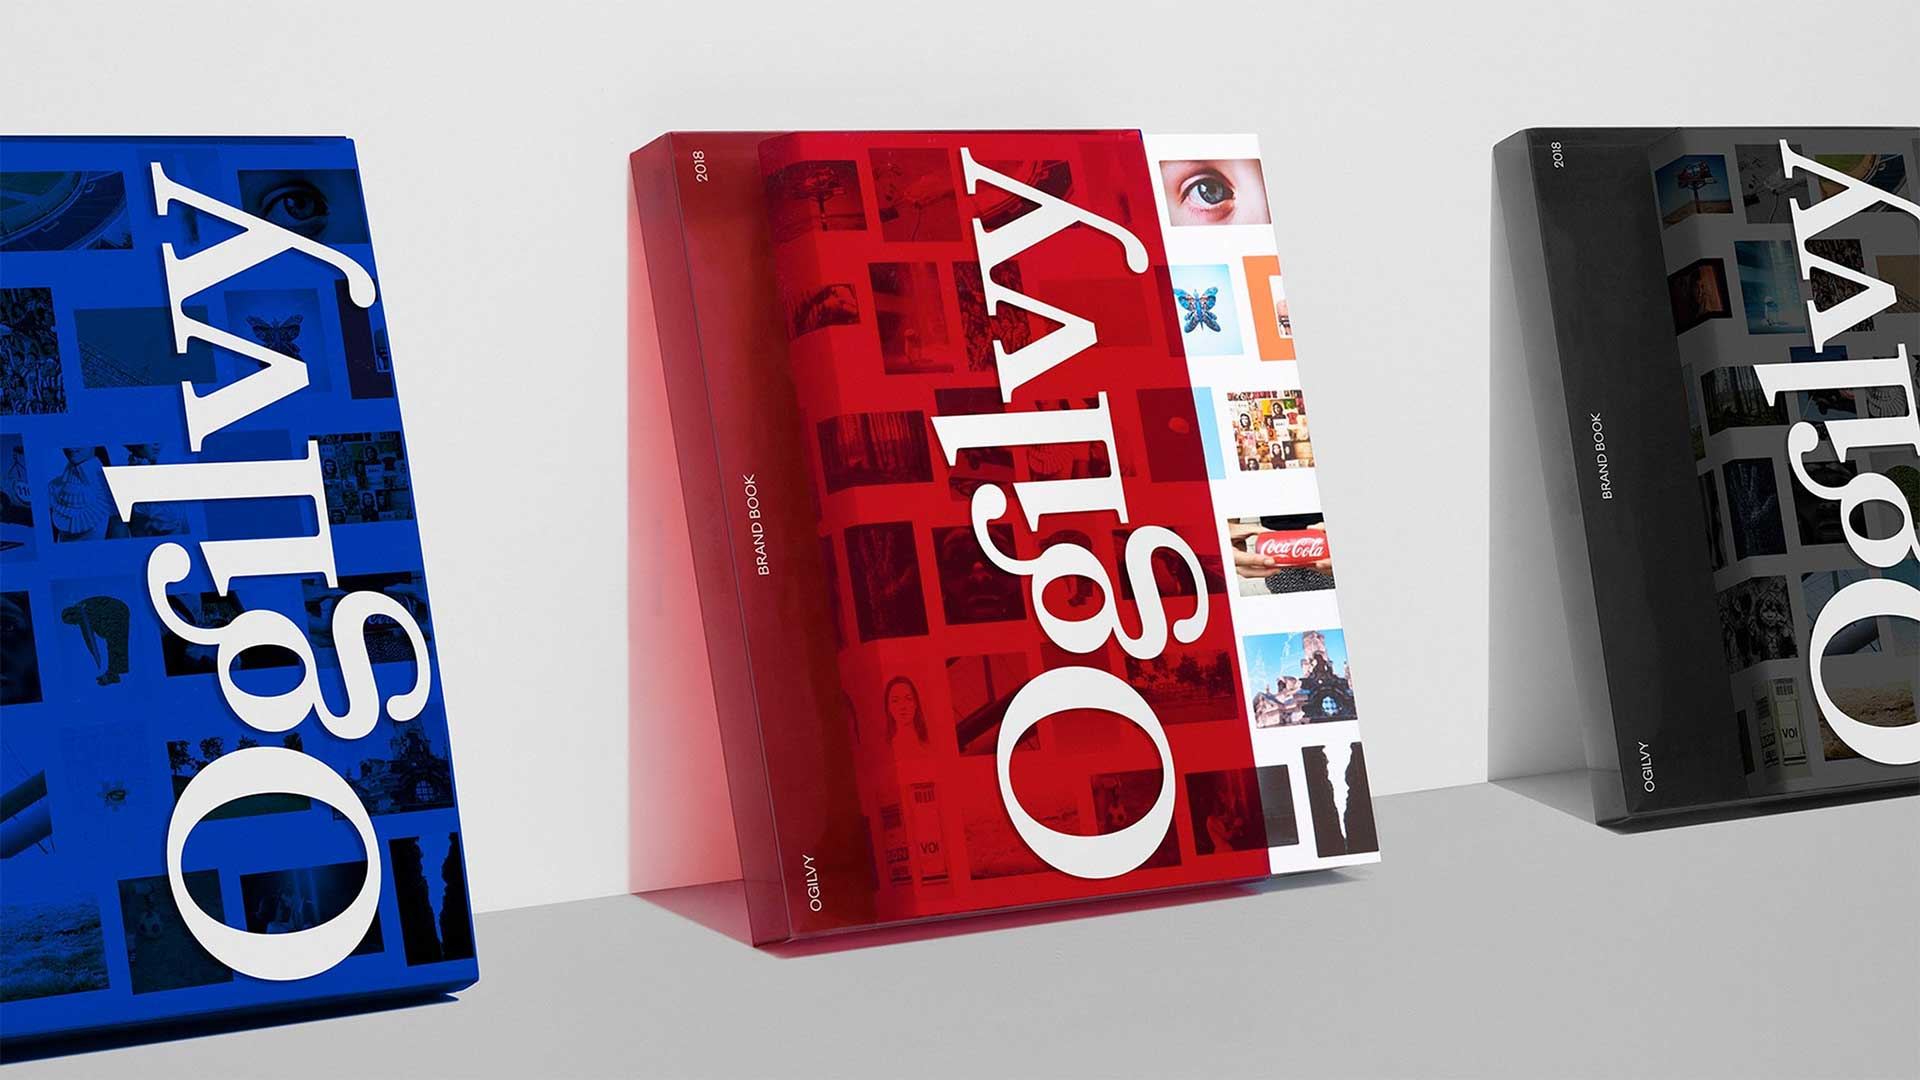 Ogilvy branding from Collins studio